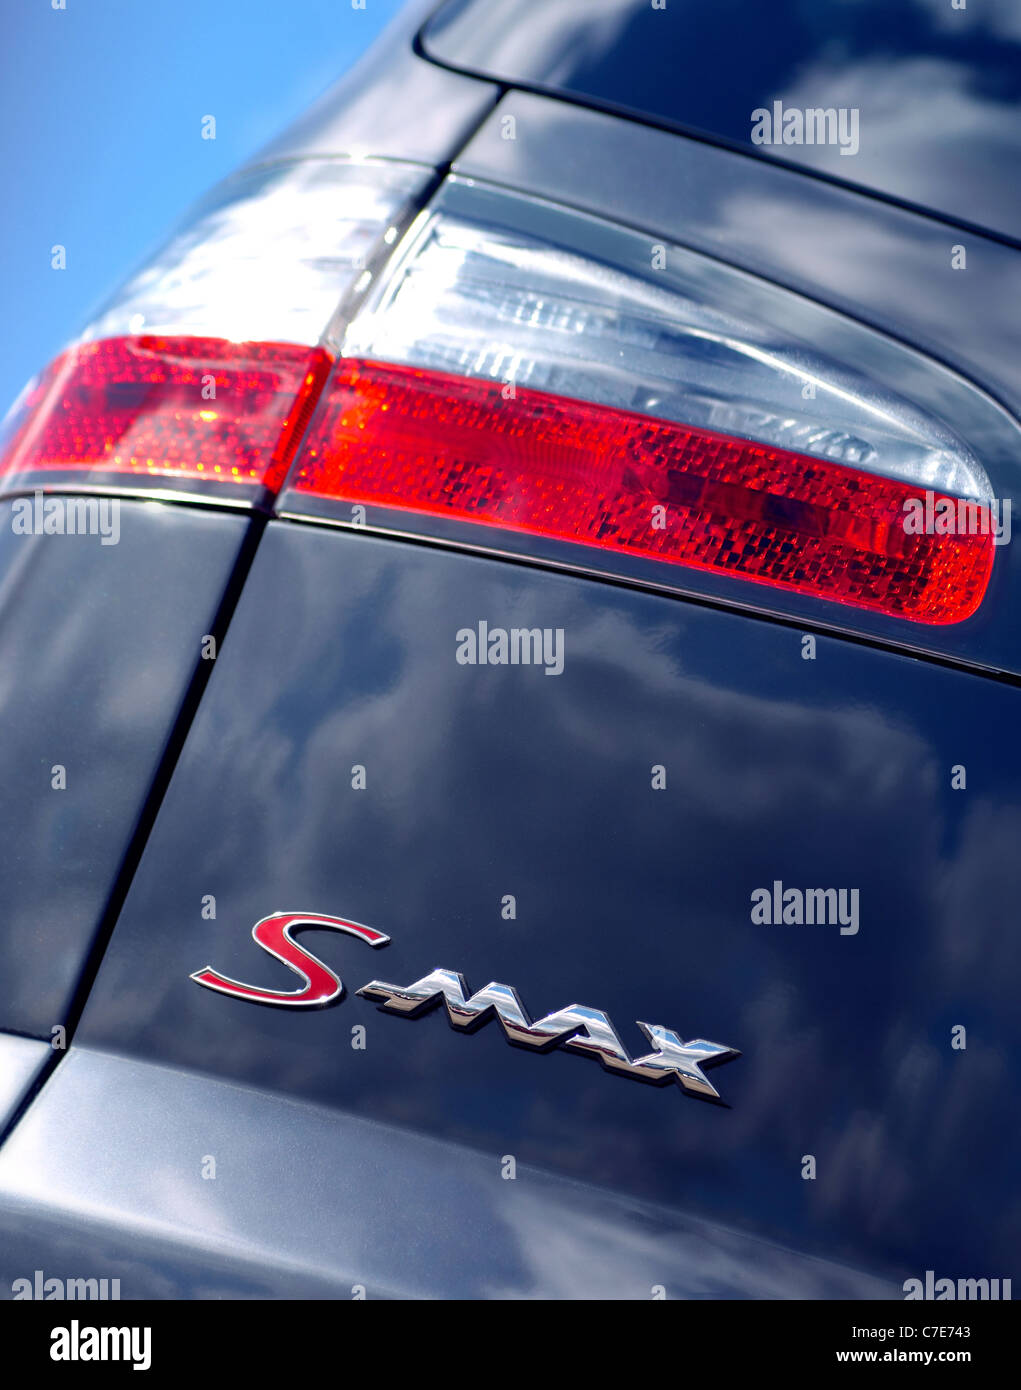 Ford S-max 2.5T rear light cluster - Stock Image